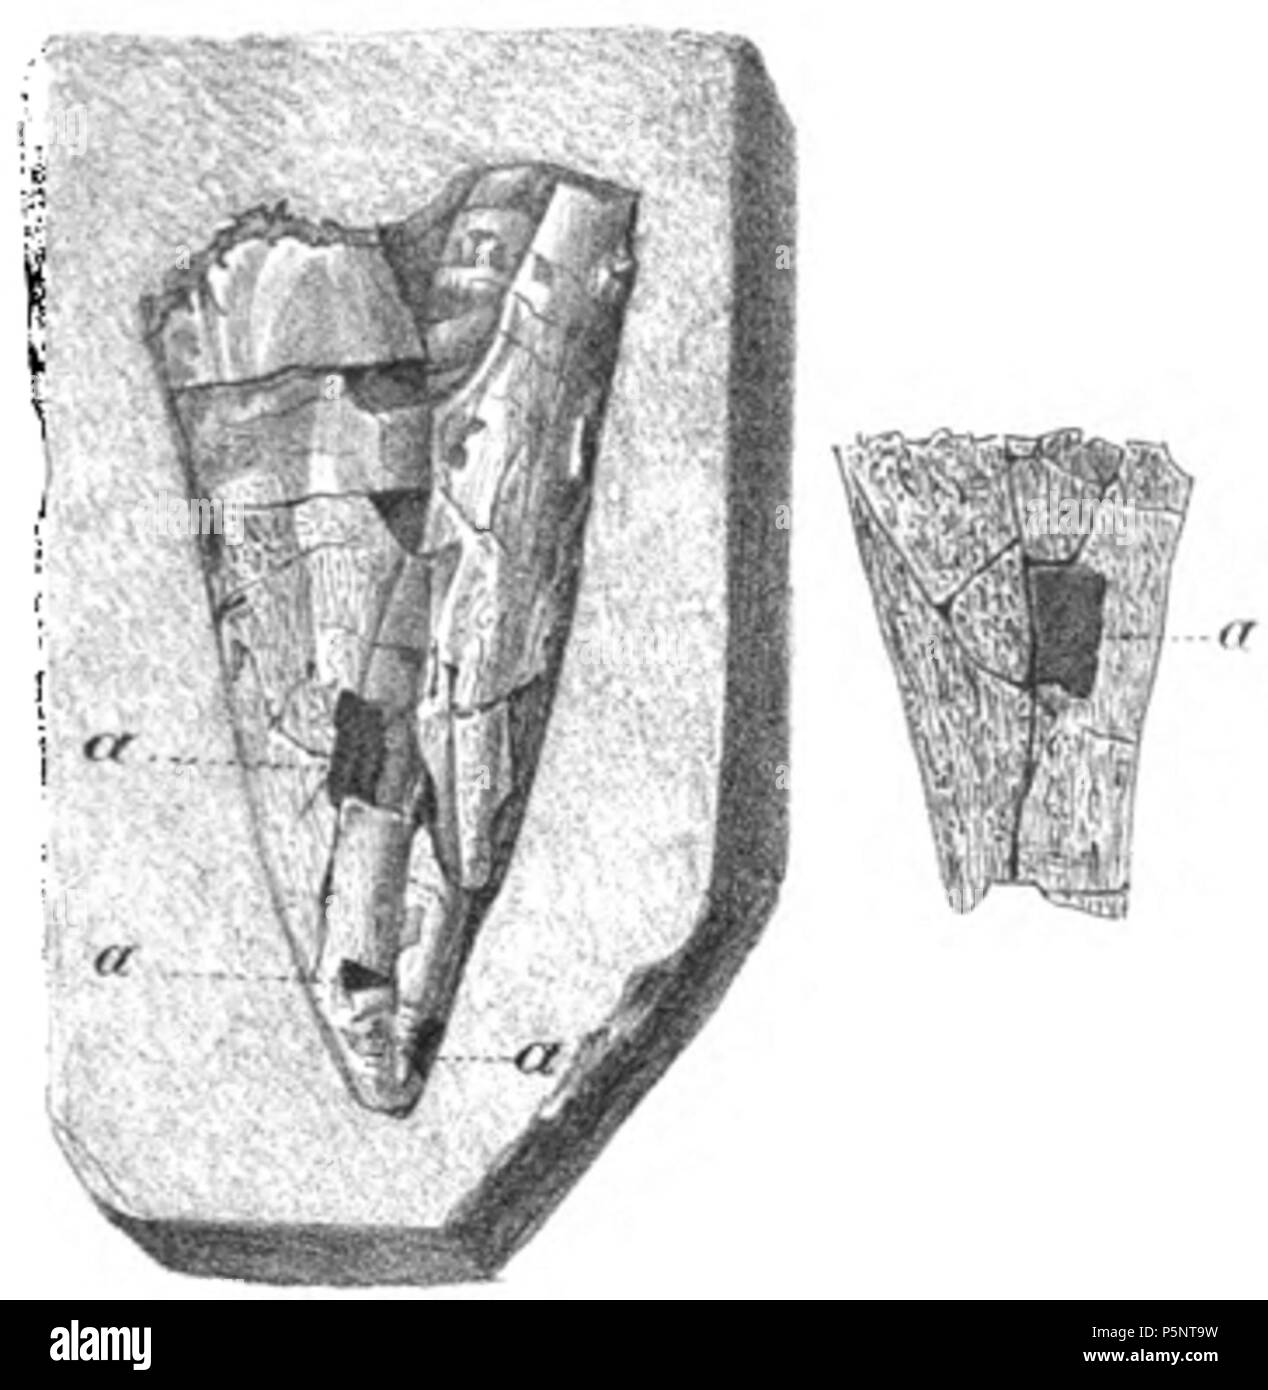 N/A. English: The apical portion of the phragmocone of a Belemnotheutis invested with the external integument; at a, a, a, is seen the corneo-calcareous layer which lies beneath. To the right is slightly magnified to show the striated surface; a. marks a denuded space, exposing the internal layer. 1848. Gideon Mantell 184 Belemnotheutis phragmocone 1 - Stock Image